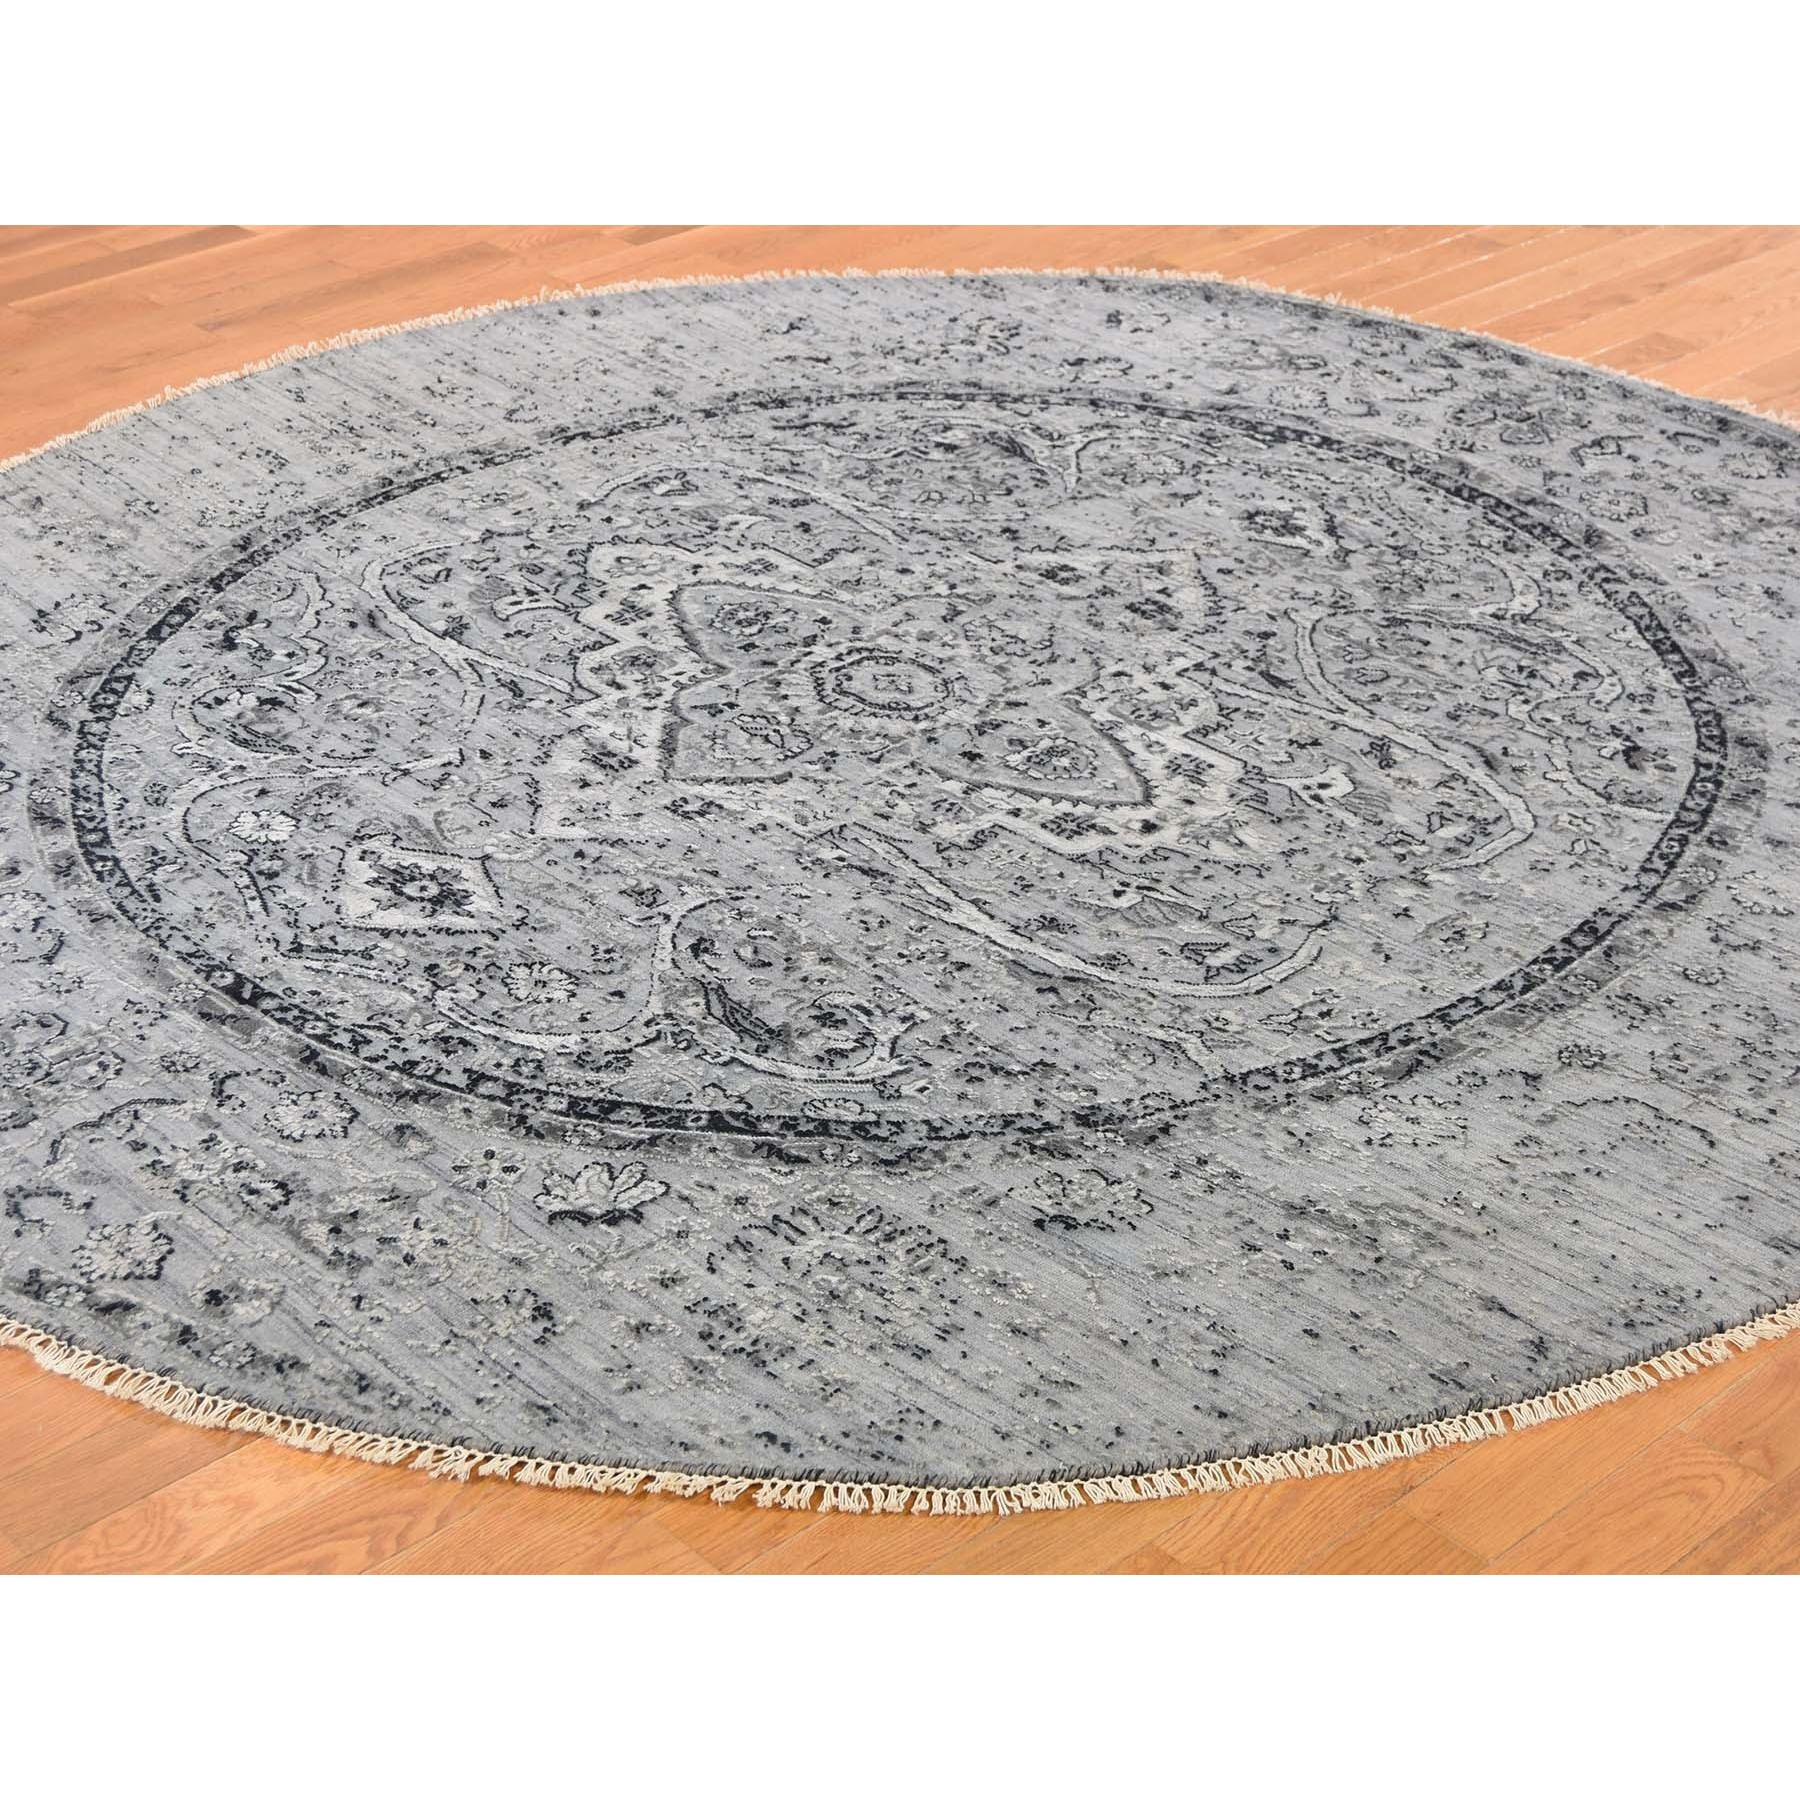 12'x12' Round Gray Broken Persian Erased Design Pure Silk With Textured Wool Hand Knotted Oriental Rug